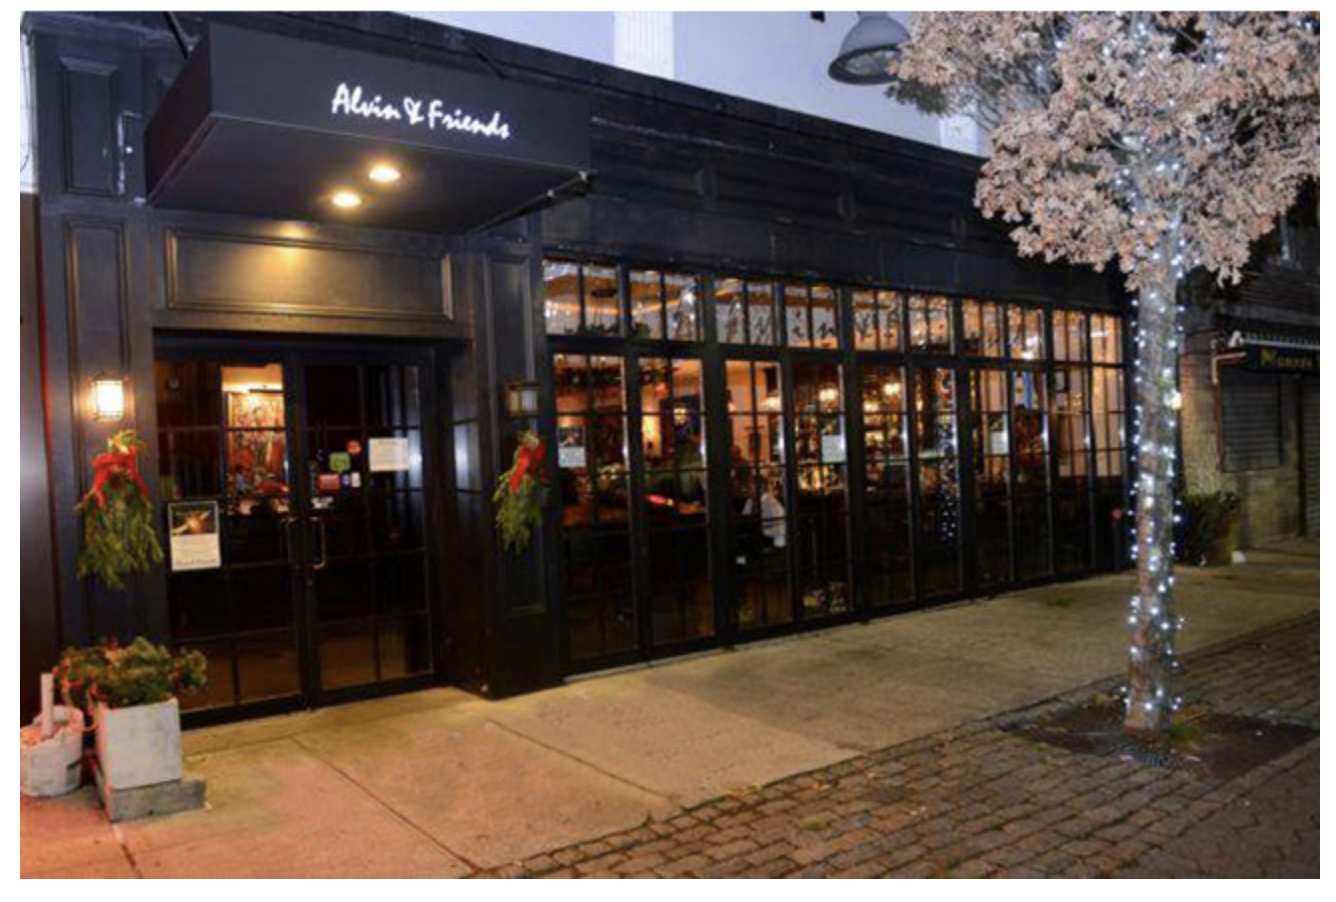 Alvin & Friends is located at 14 Memorial Hwy, New Rochelle, NY 10804.  www.alvinandfriendsrestaurant.com